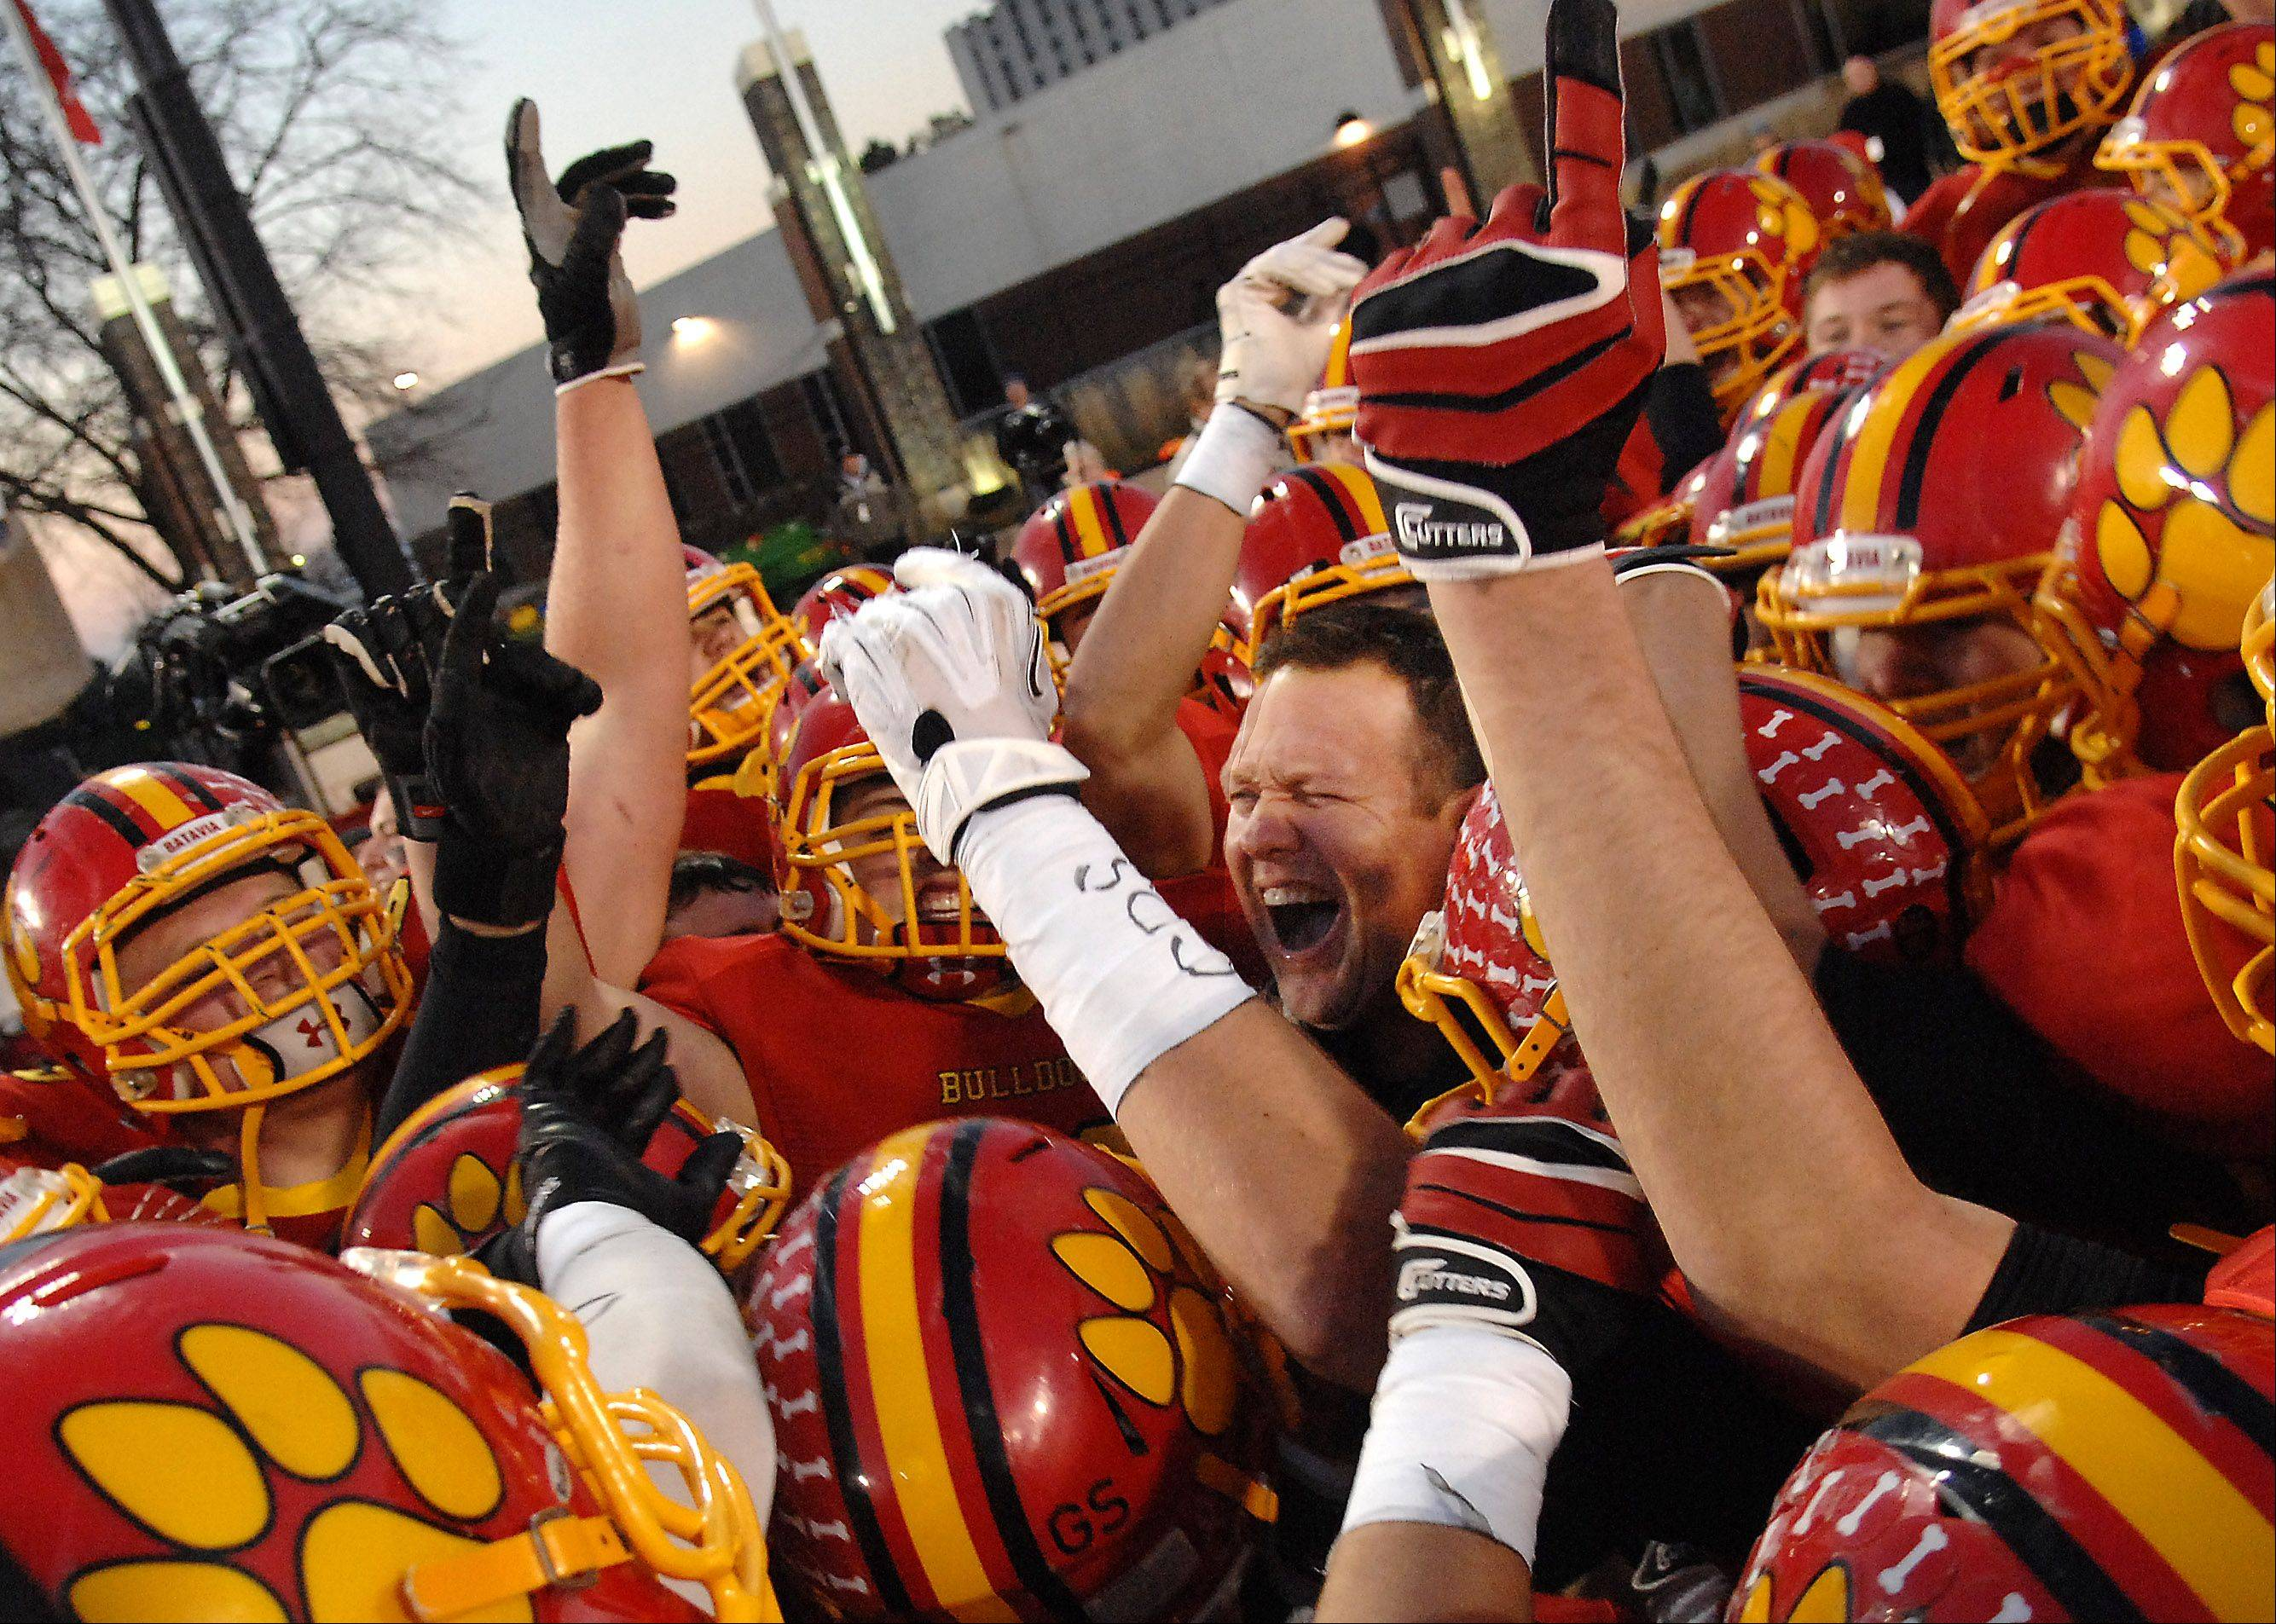 Batavia's head coach Dennis Piron is in the middle of the celebratory scrum after Saturday's 6A championship game in DeKalb.